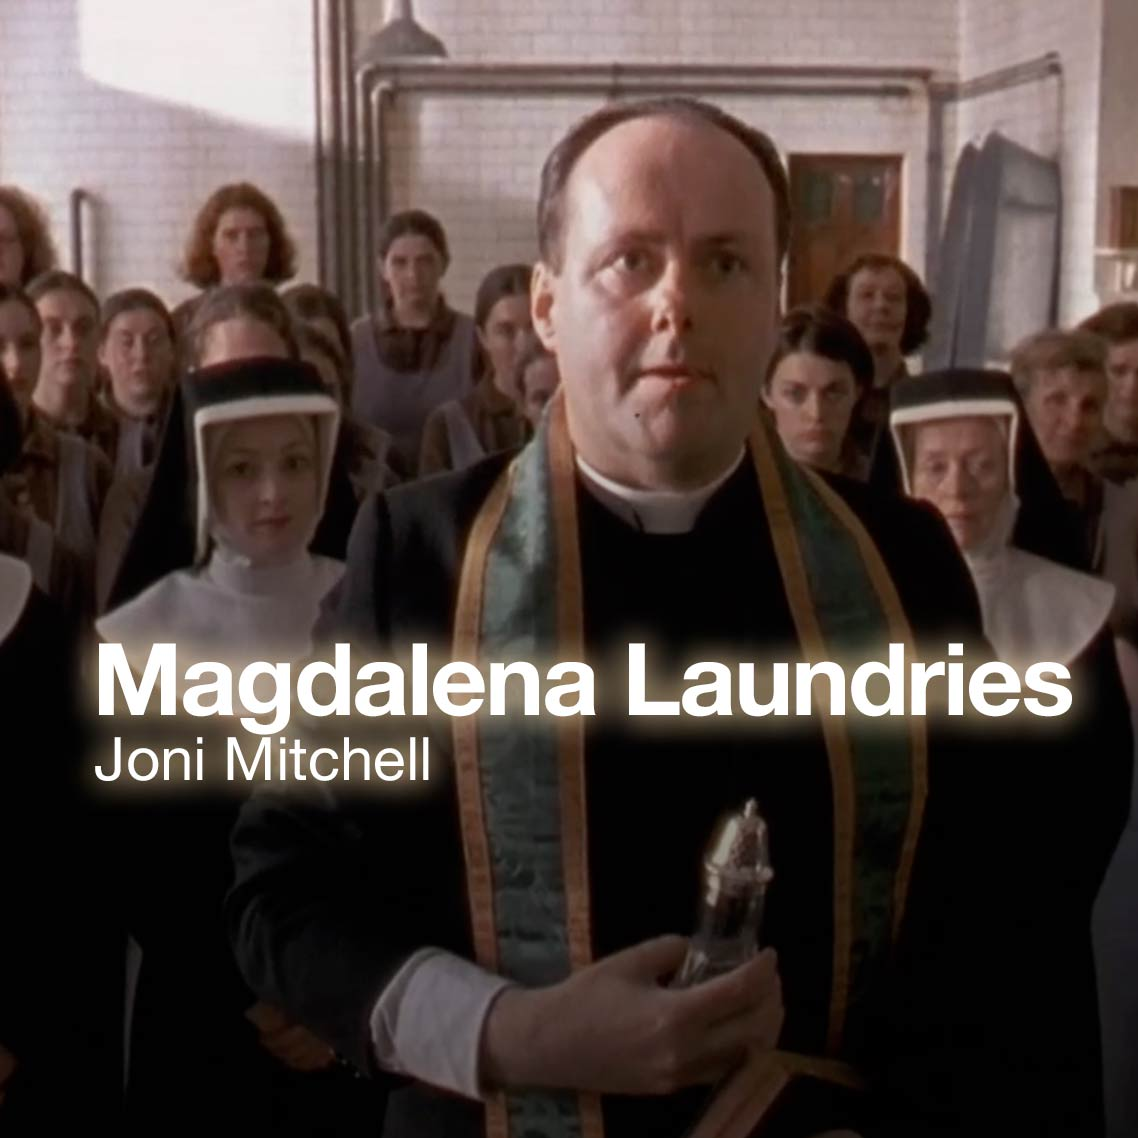 The Magdalena Laundries | music video